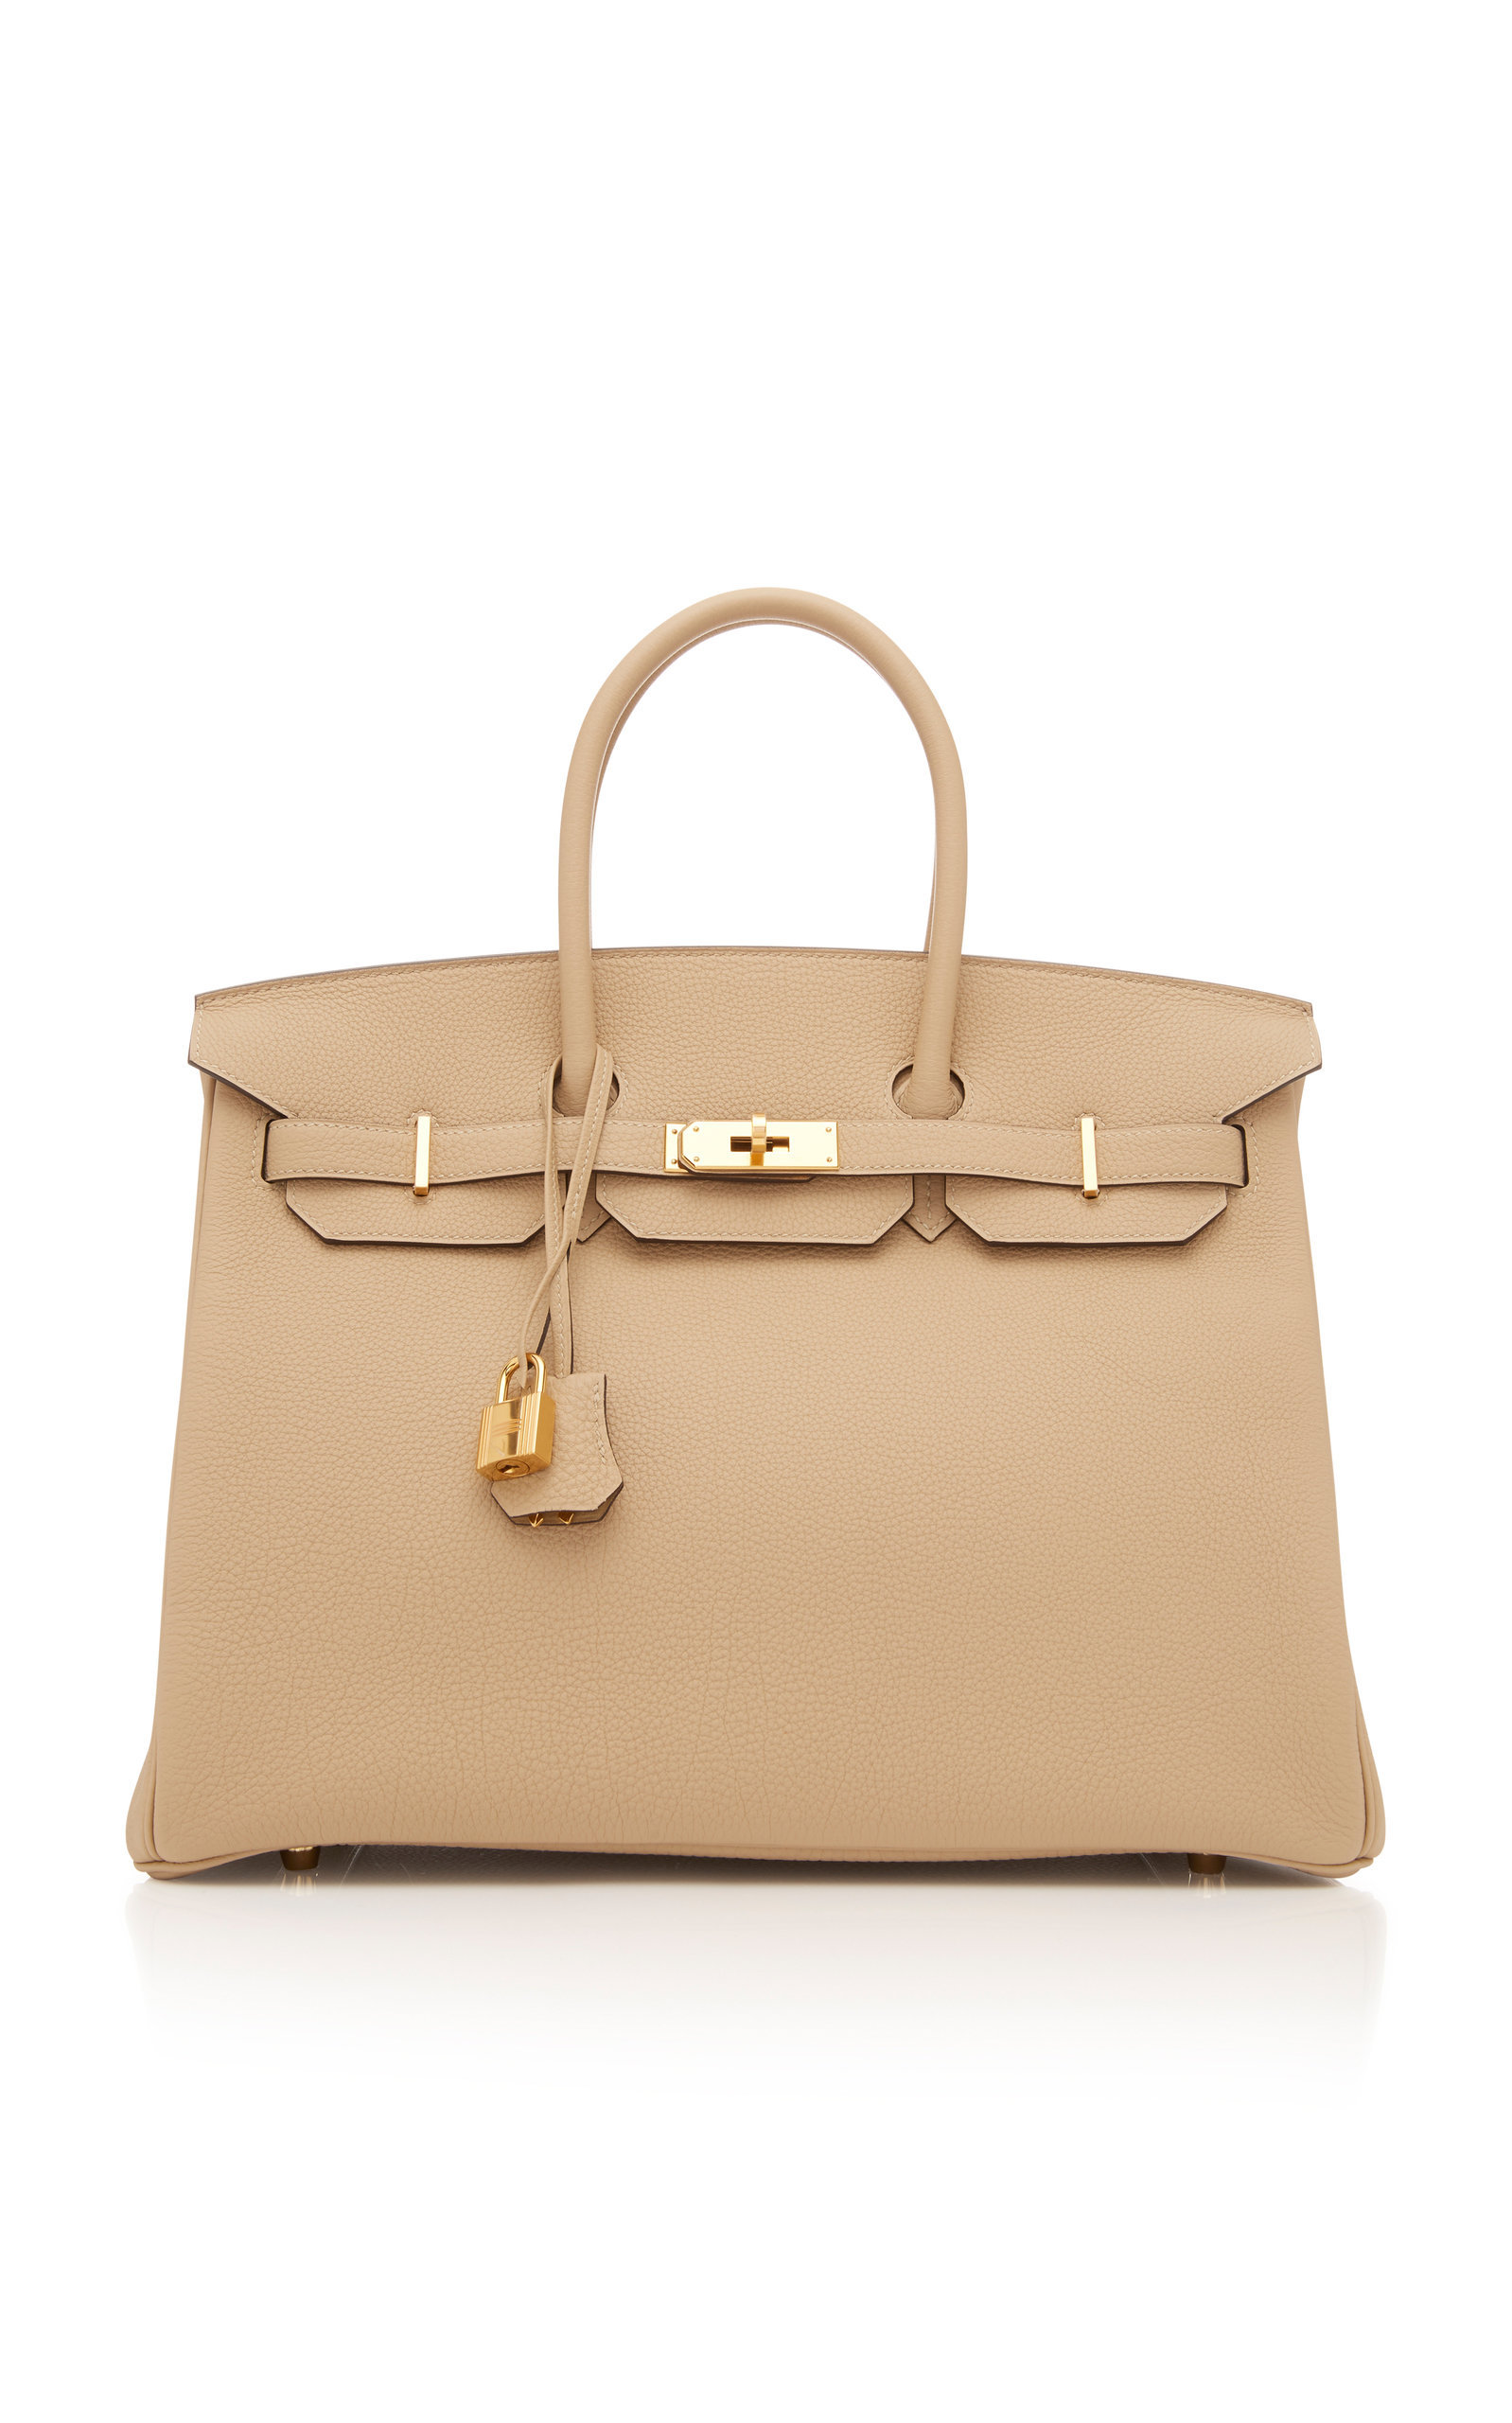 95e9937aea0a Hermes 35cm Trench Togo Leather Birkin by HERMÈS VINTAGE BY HERITAGE  AUCTIONS for Preorder on Moda Operandi